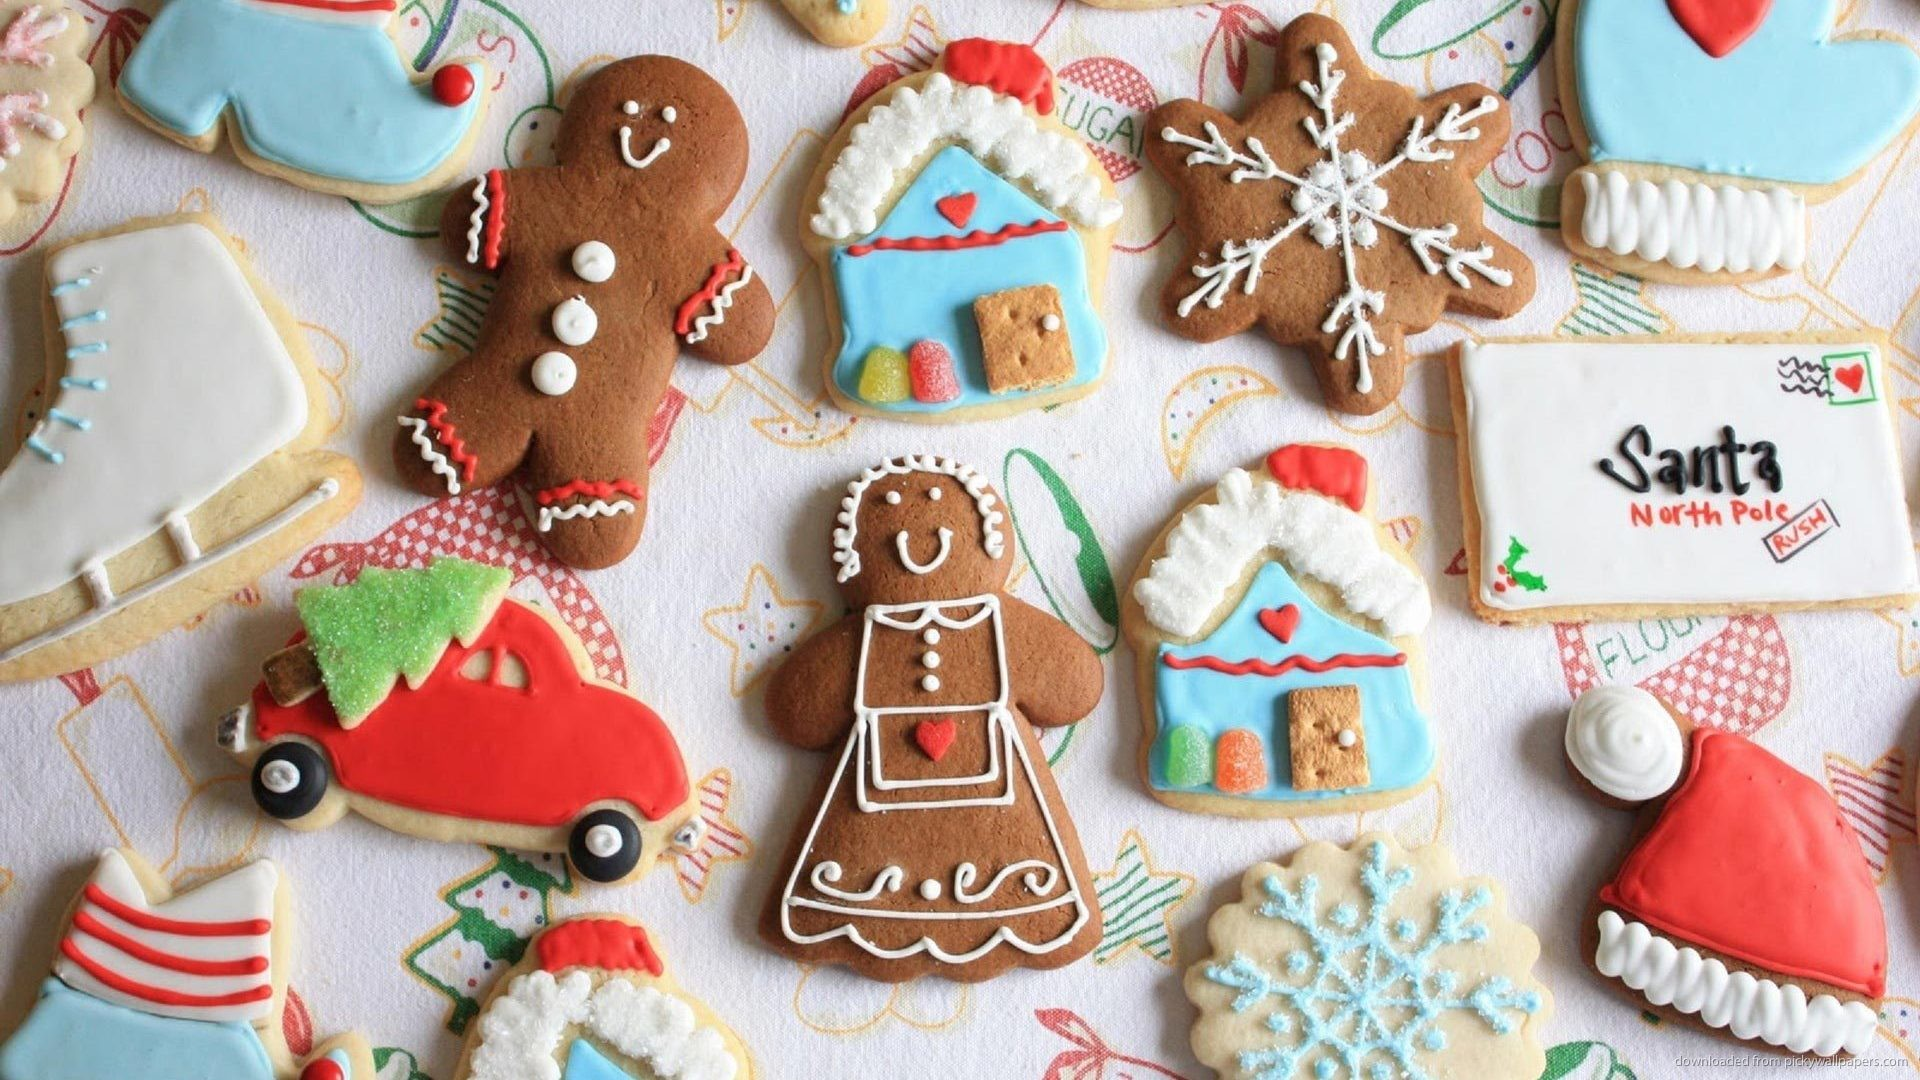 1920x1080 Cute Assorted Holiday Christmas Cookies Wallpaper picture